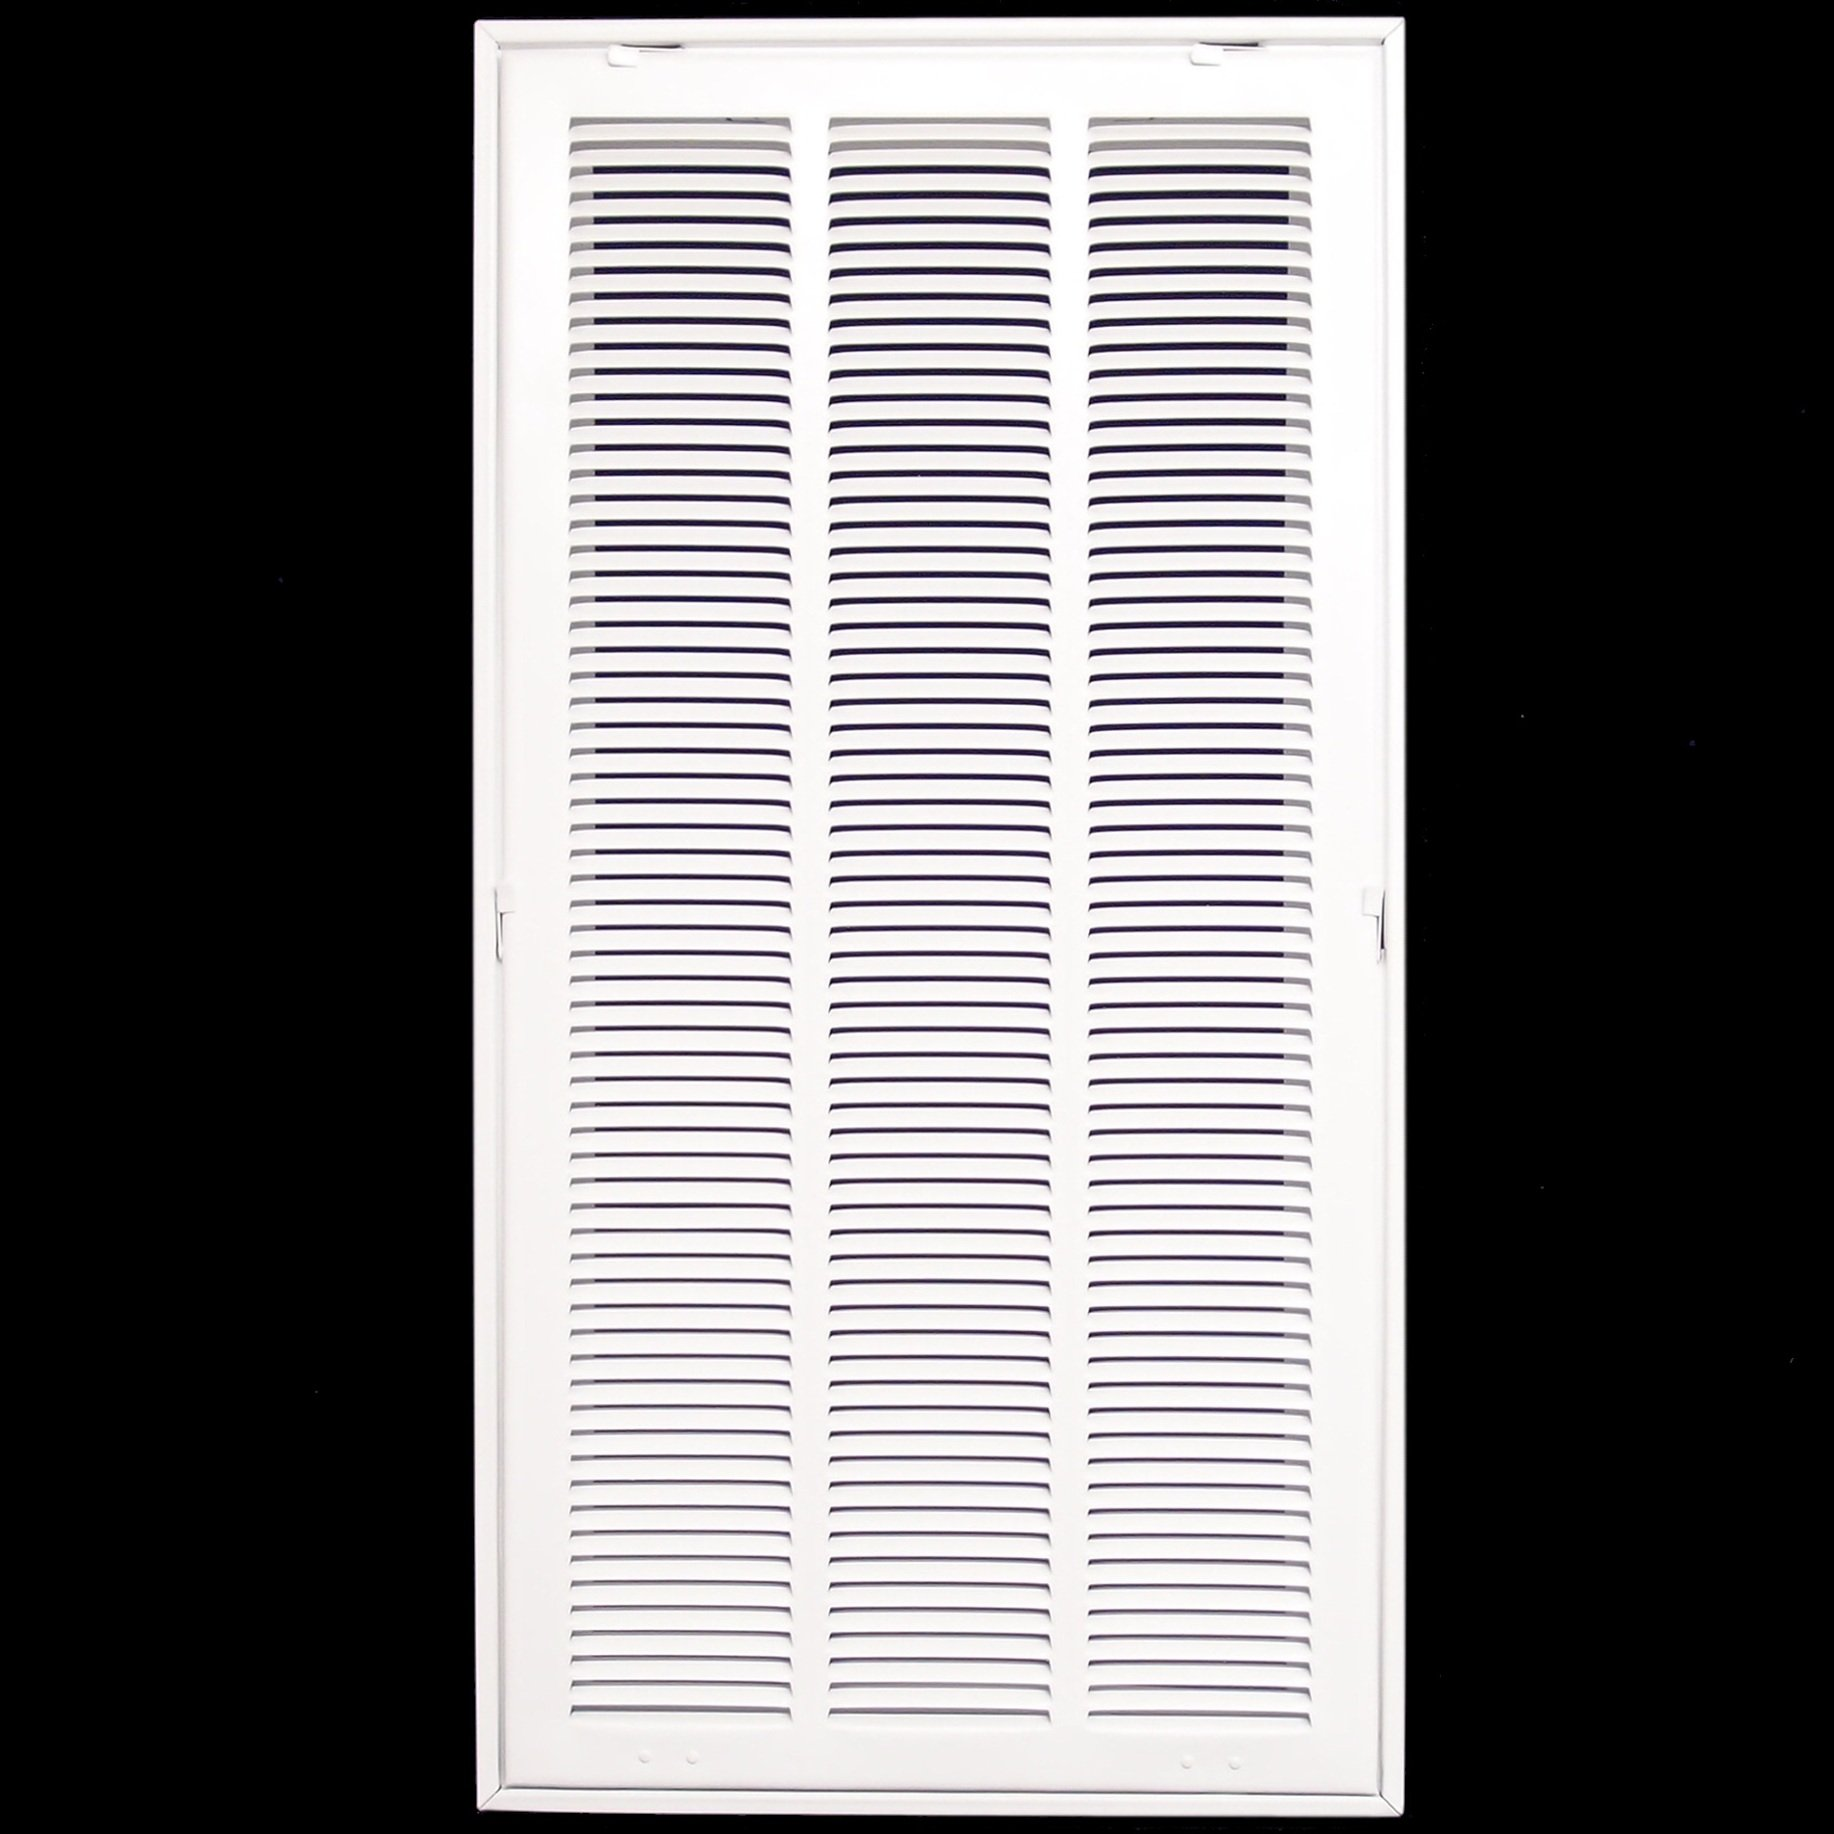 14'' X 36 Steel Return Air Filter Grille for 1'' Filter - Fixed Hinged - ceiling Recommended - HVAC DUCT COVER - Flat Stamped Face - White [Outer Dimensions: 16.5''w X 38.5''h]